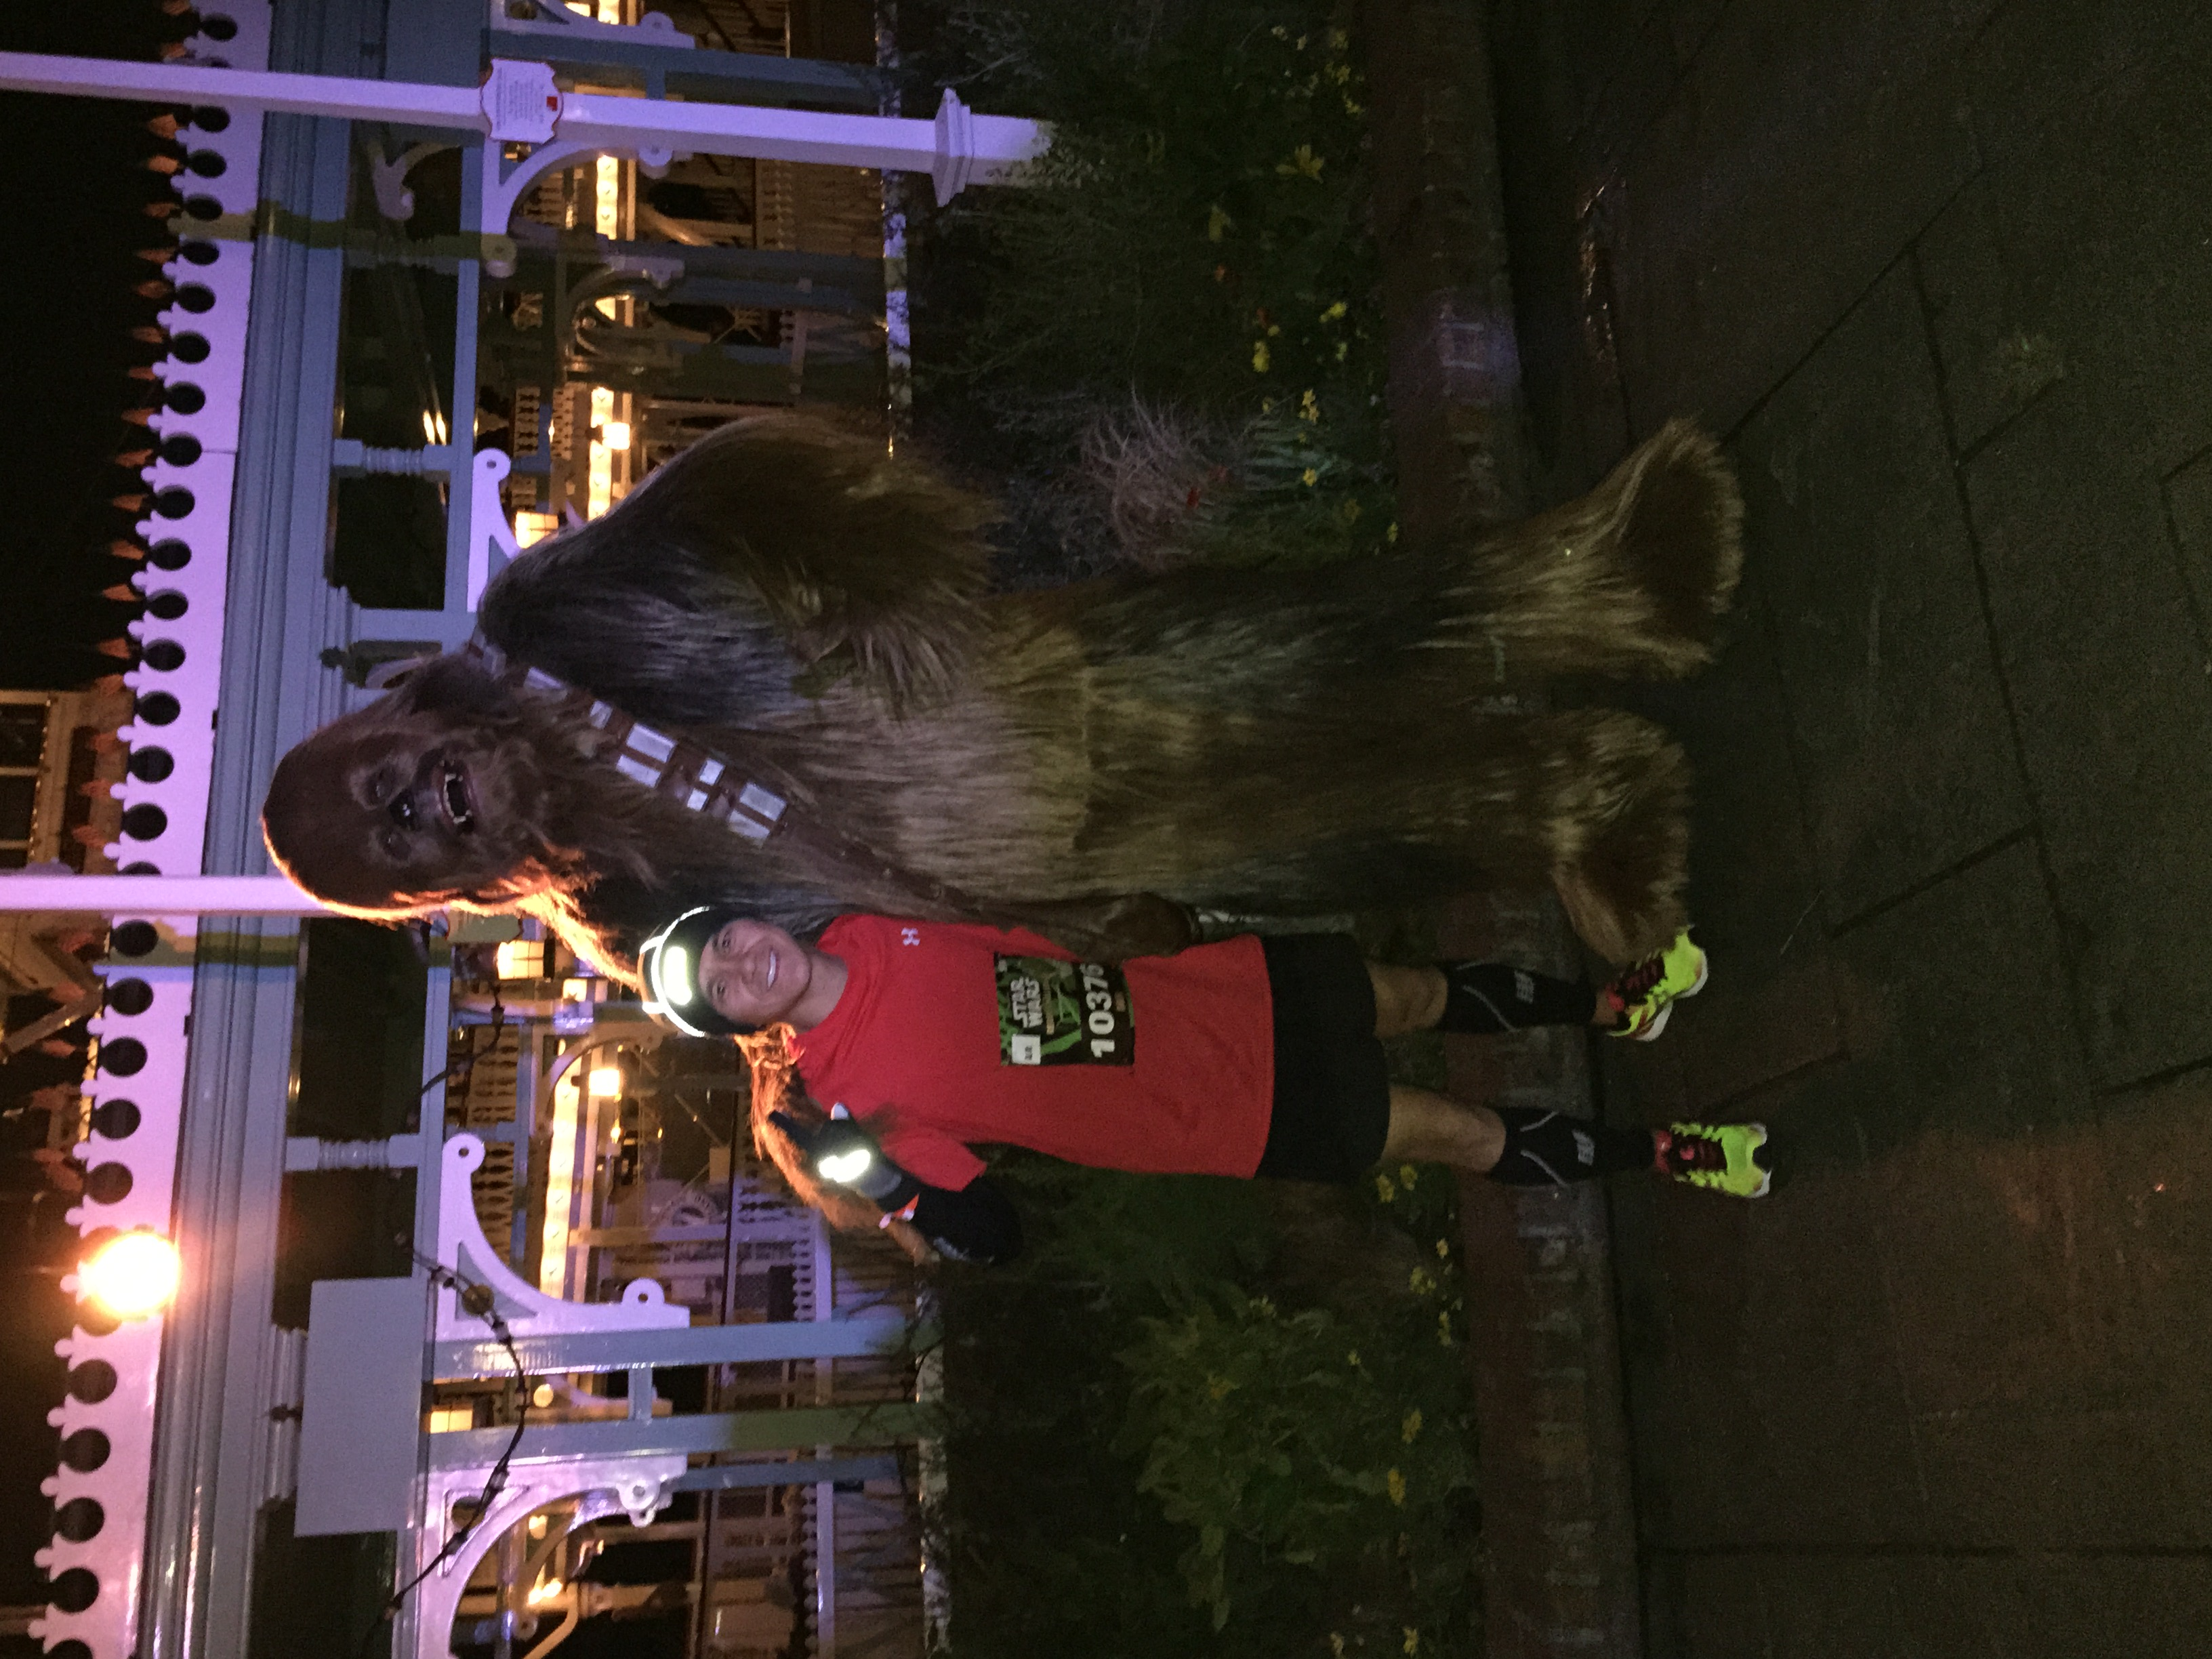 I made sure to catch a picture with Chewie! I was in the front pack so the line wasn't long at all.